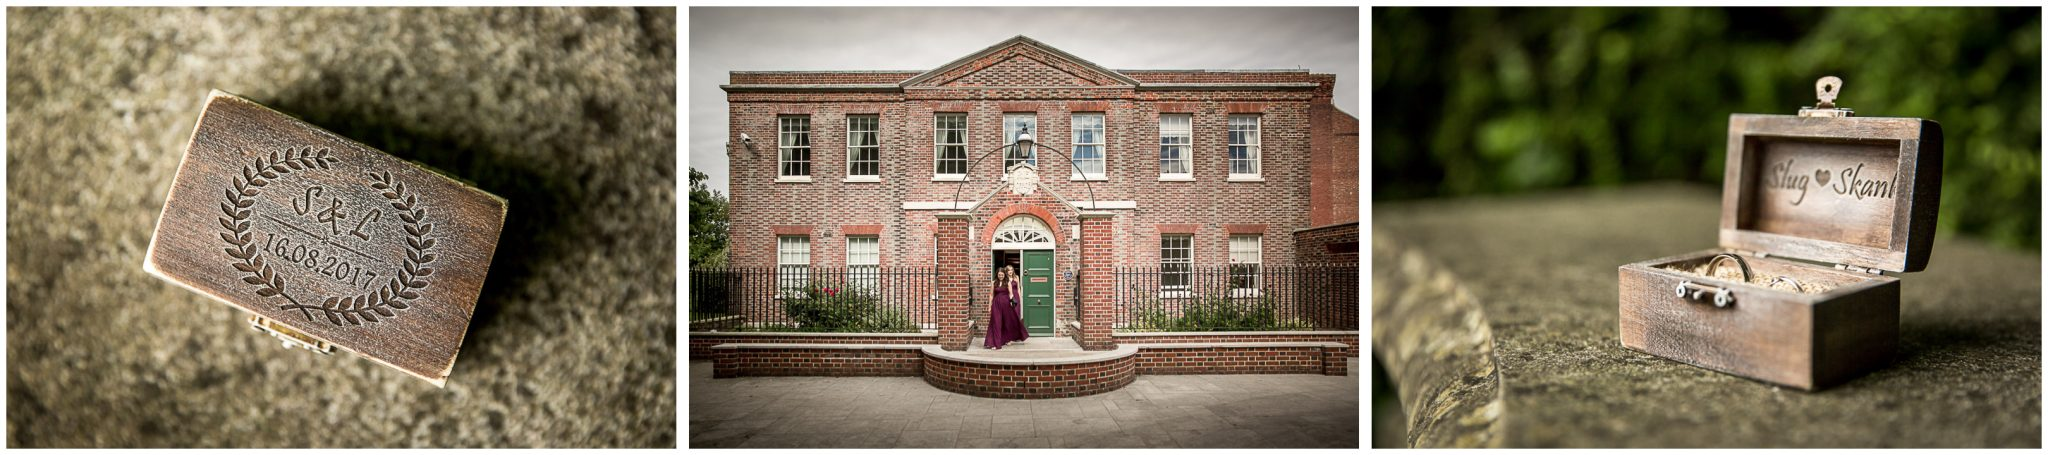 Portsmouth Registry Office wedding venue exterior and ring details